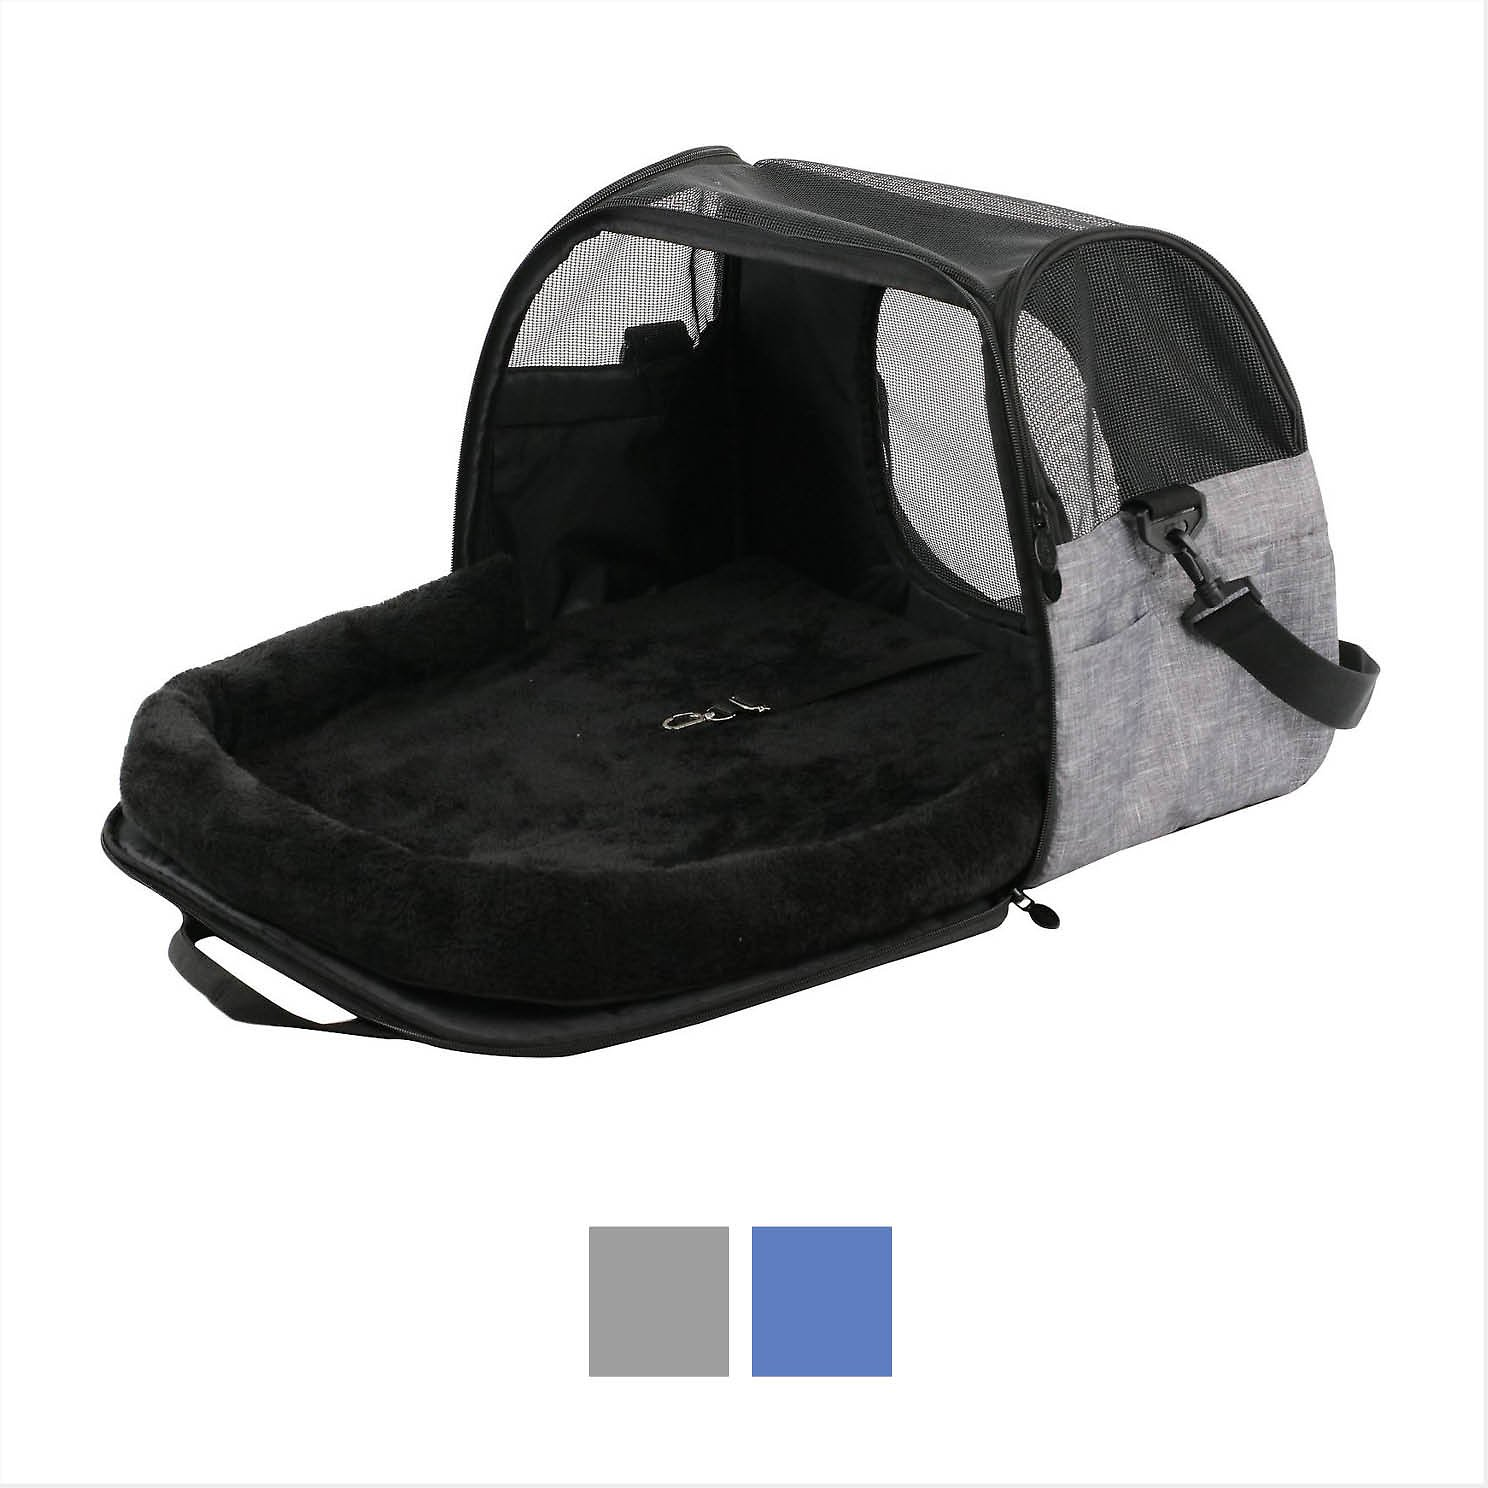 Gen7Pets Carry-Me Sleeper Pet Carrier